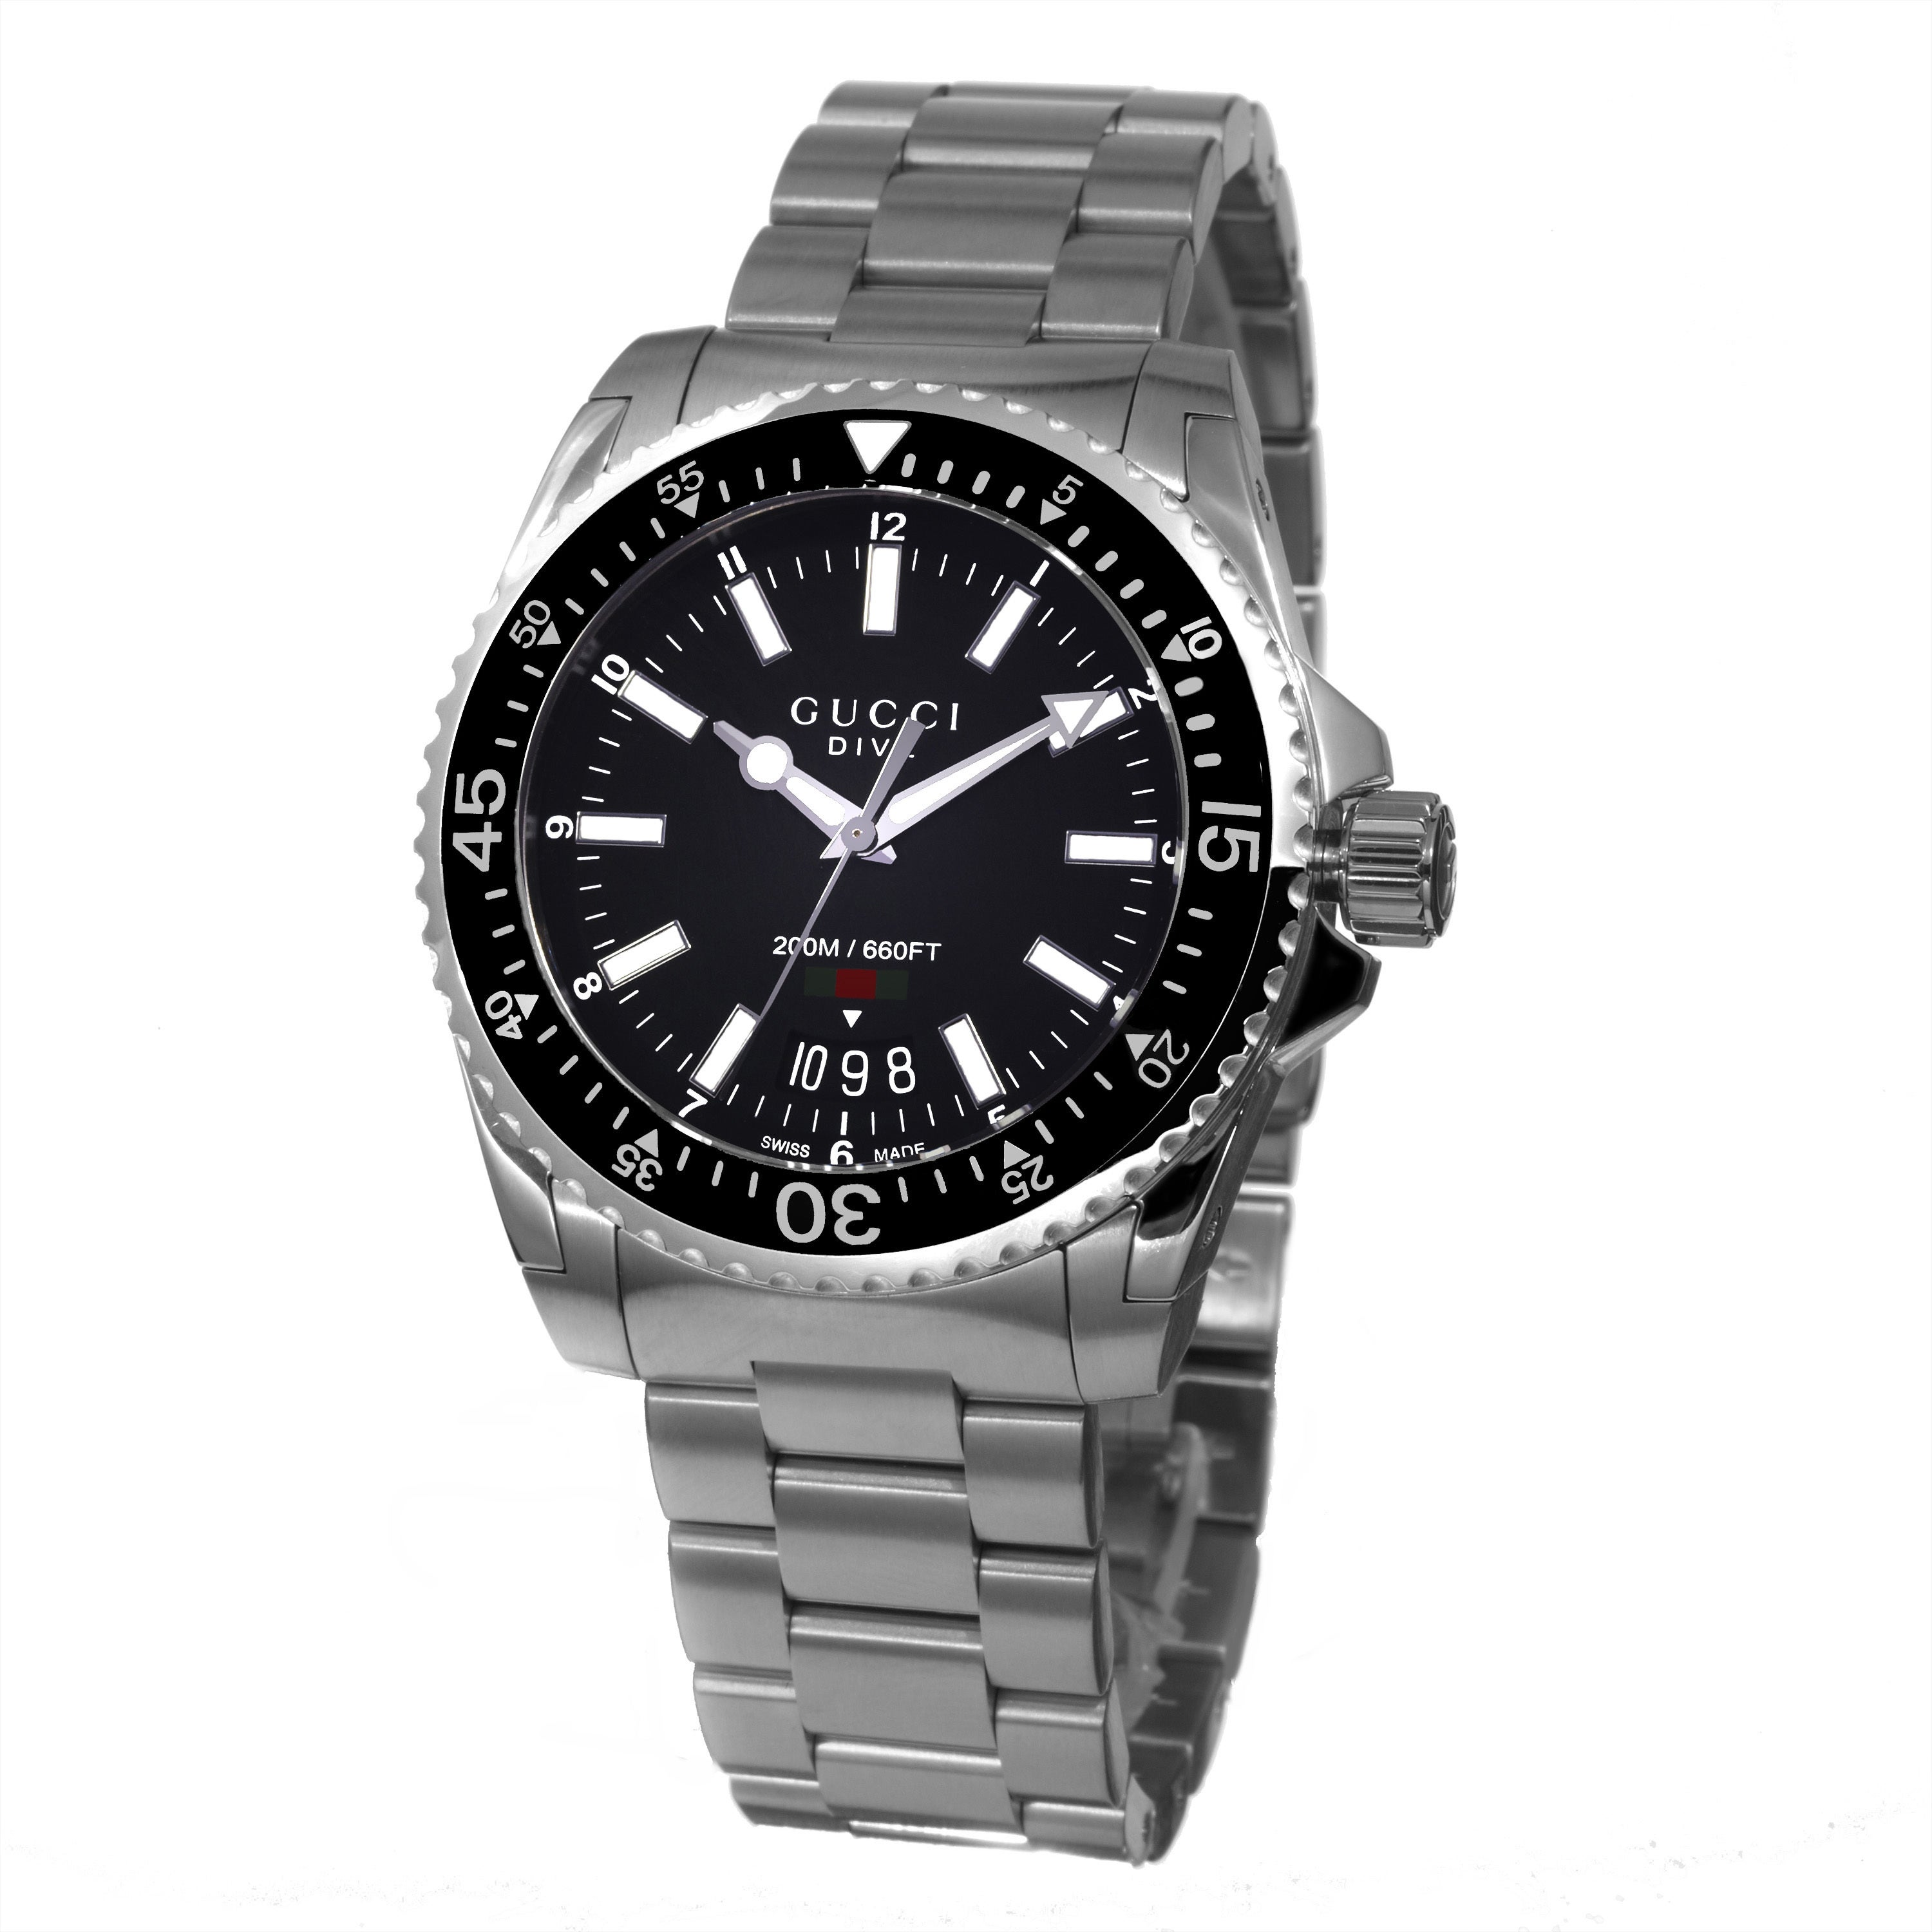 631e1cd0031 Shop Gucci Men s YA136301  Dive  Black Dial Stainless Steel Swiss Quartz  Watch - Free Shipping Today - Overstock - 10290486